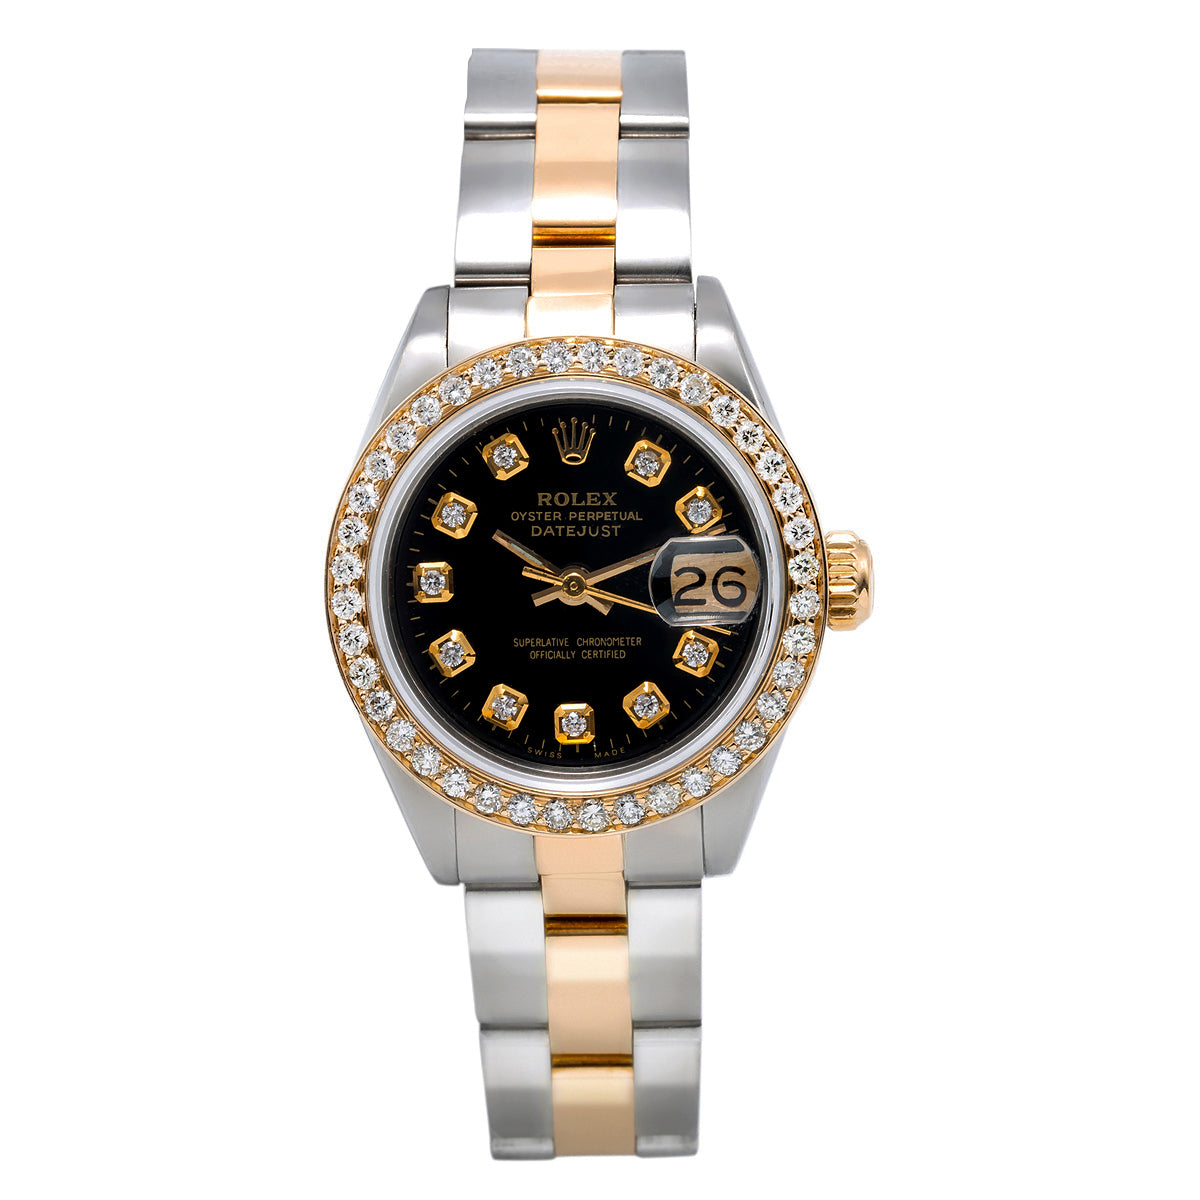 Rolex DateJust Two Tone Diamond Watch, 6917 26mm, Black Dial With 0.90Ct Diamond Bezel